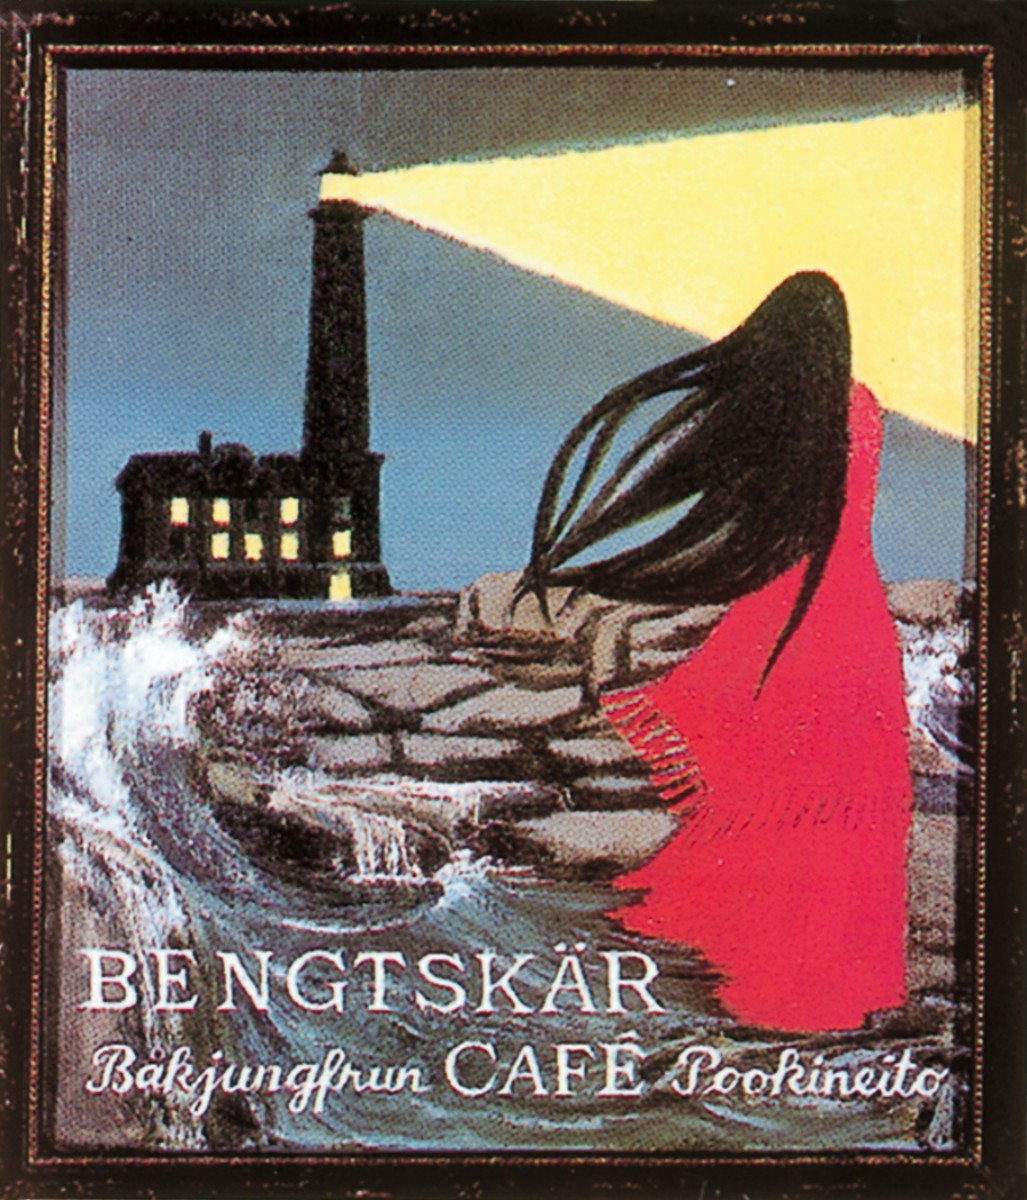 Picture of the Bengtskär Coffee label.